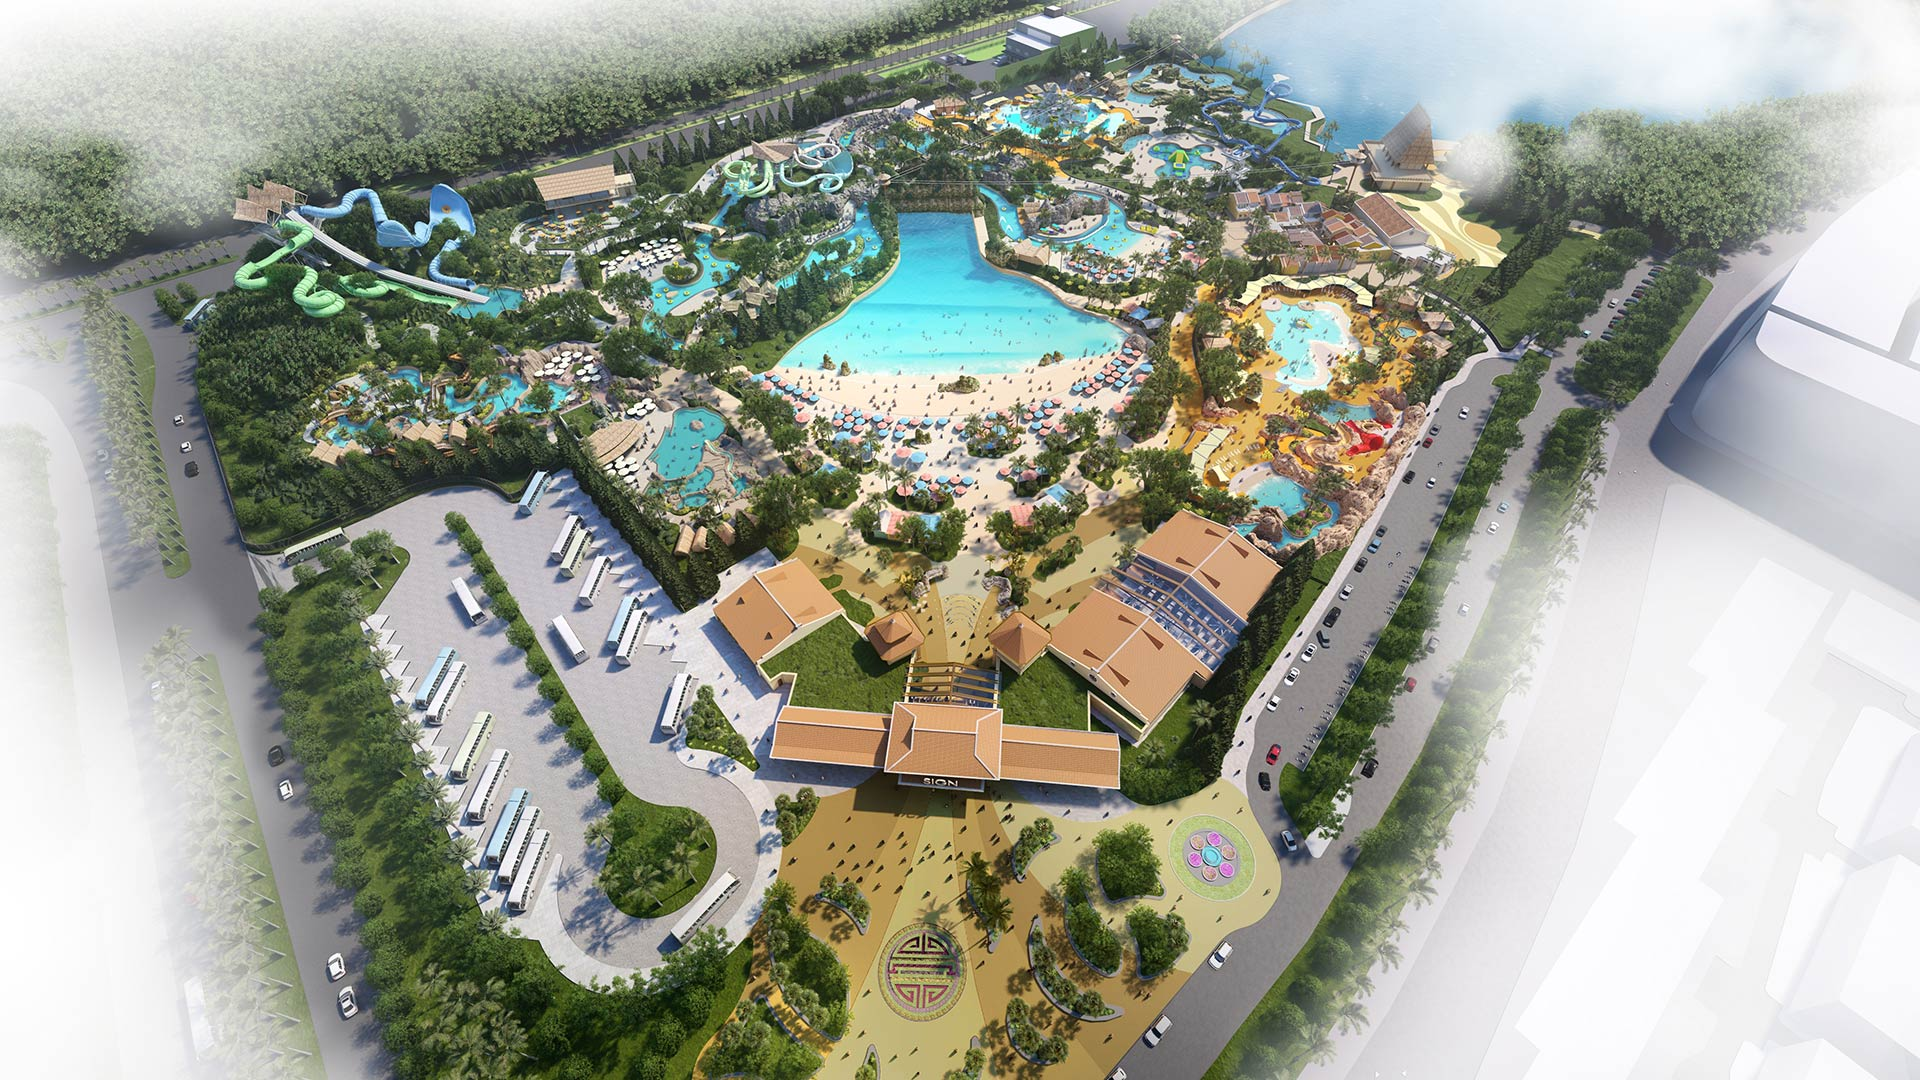 Phu Quoc Marina Waterpark - Phoi canh cong vien nuoc